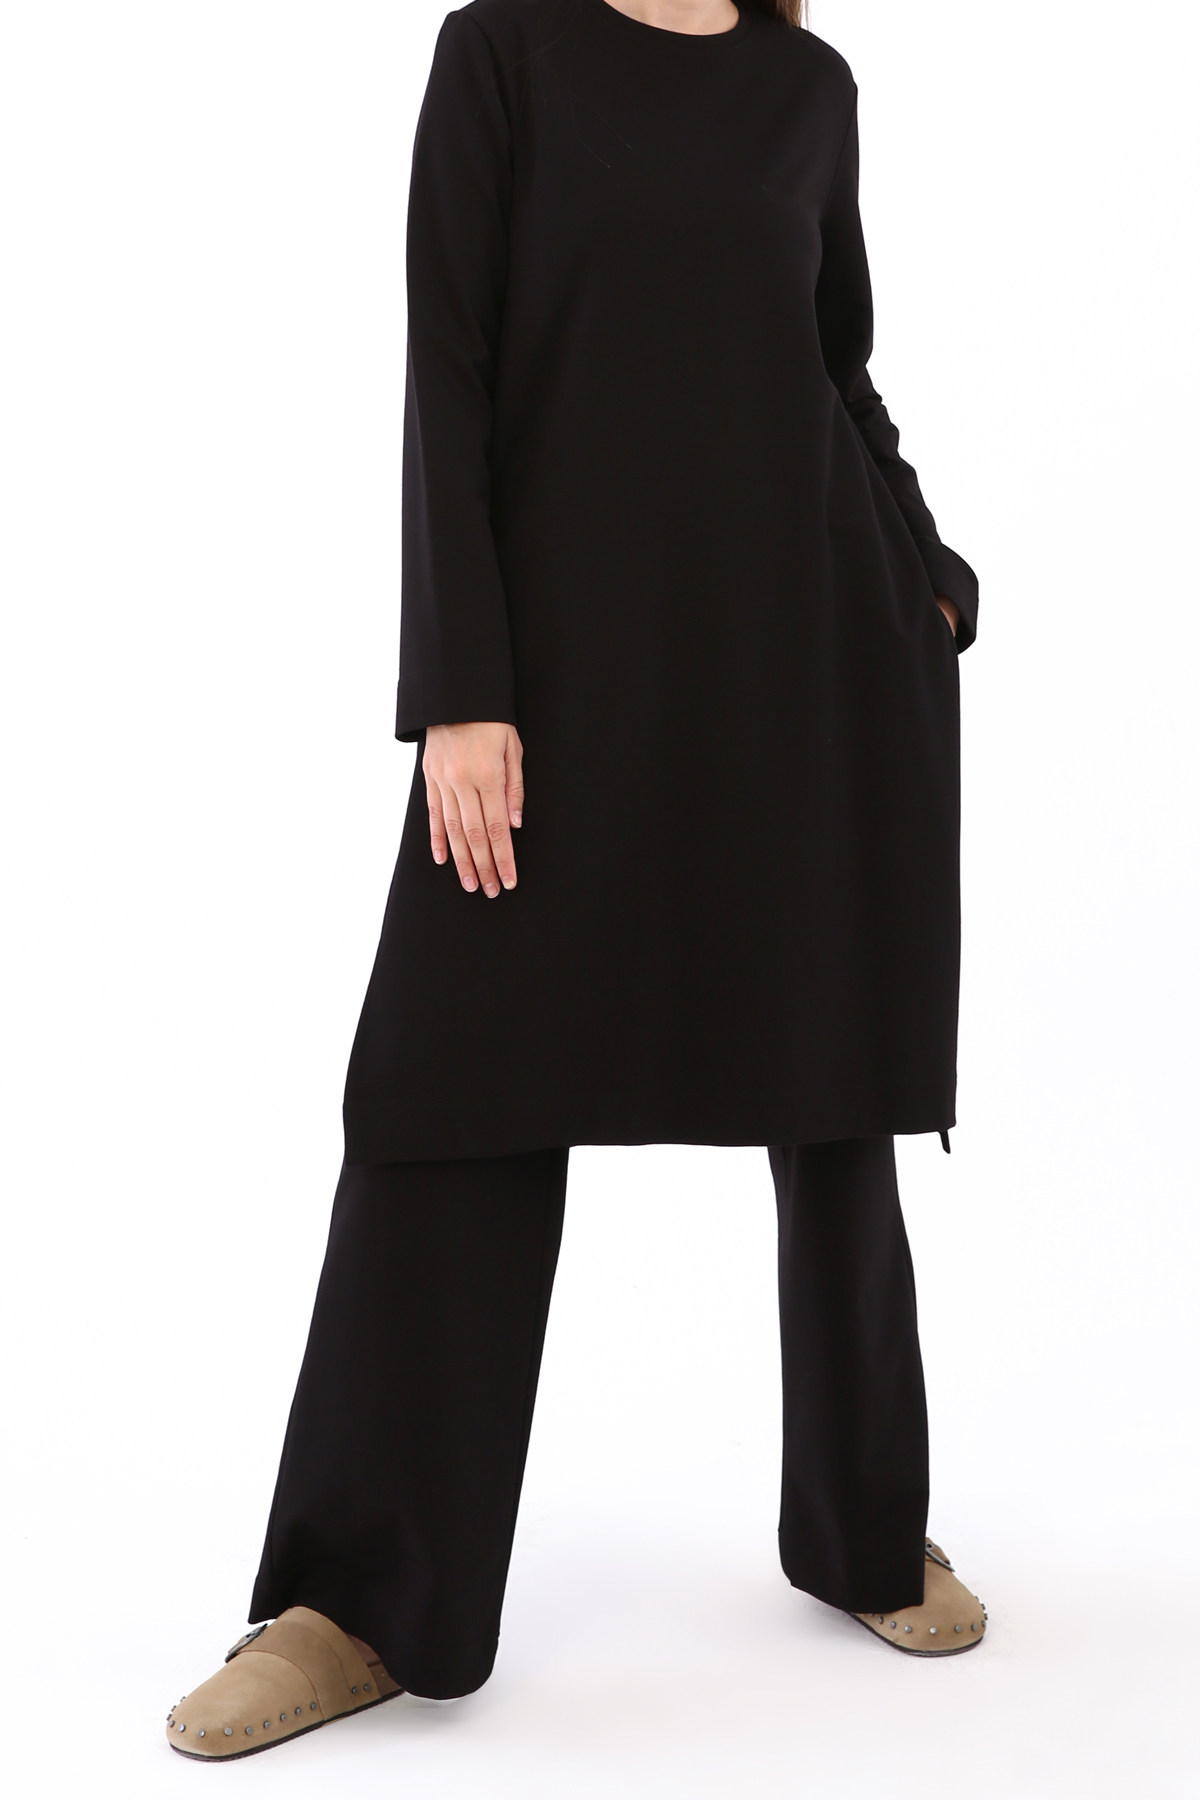 Slit Side Blouse and Pants Outfit Set